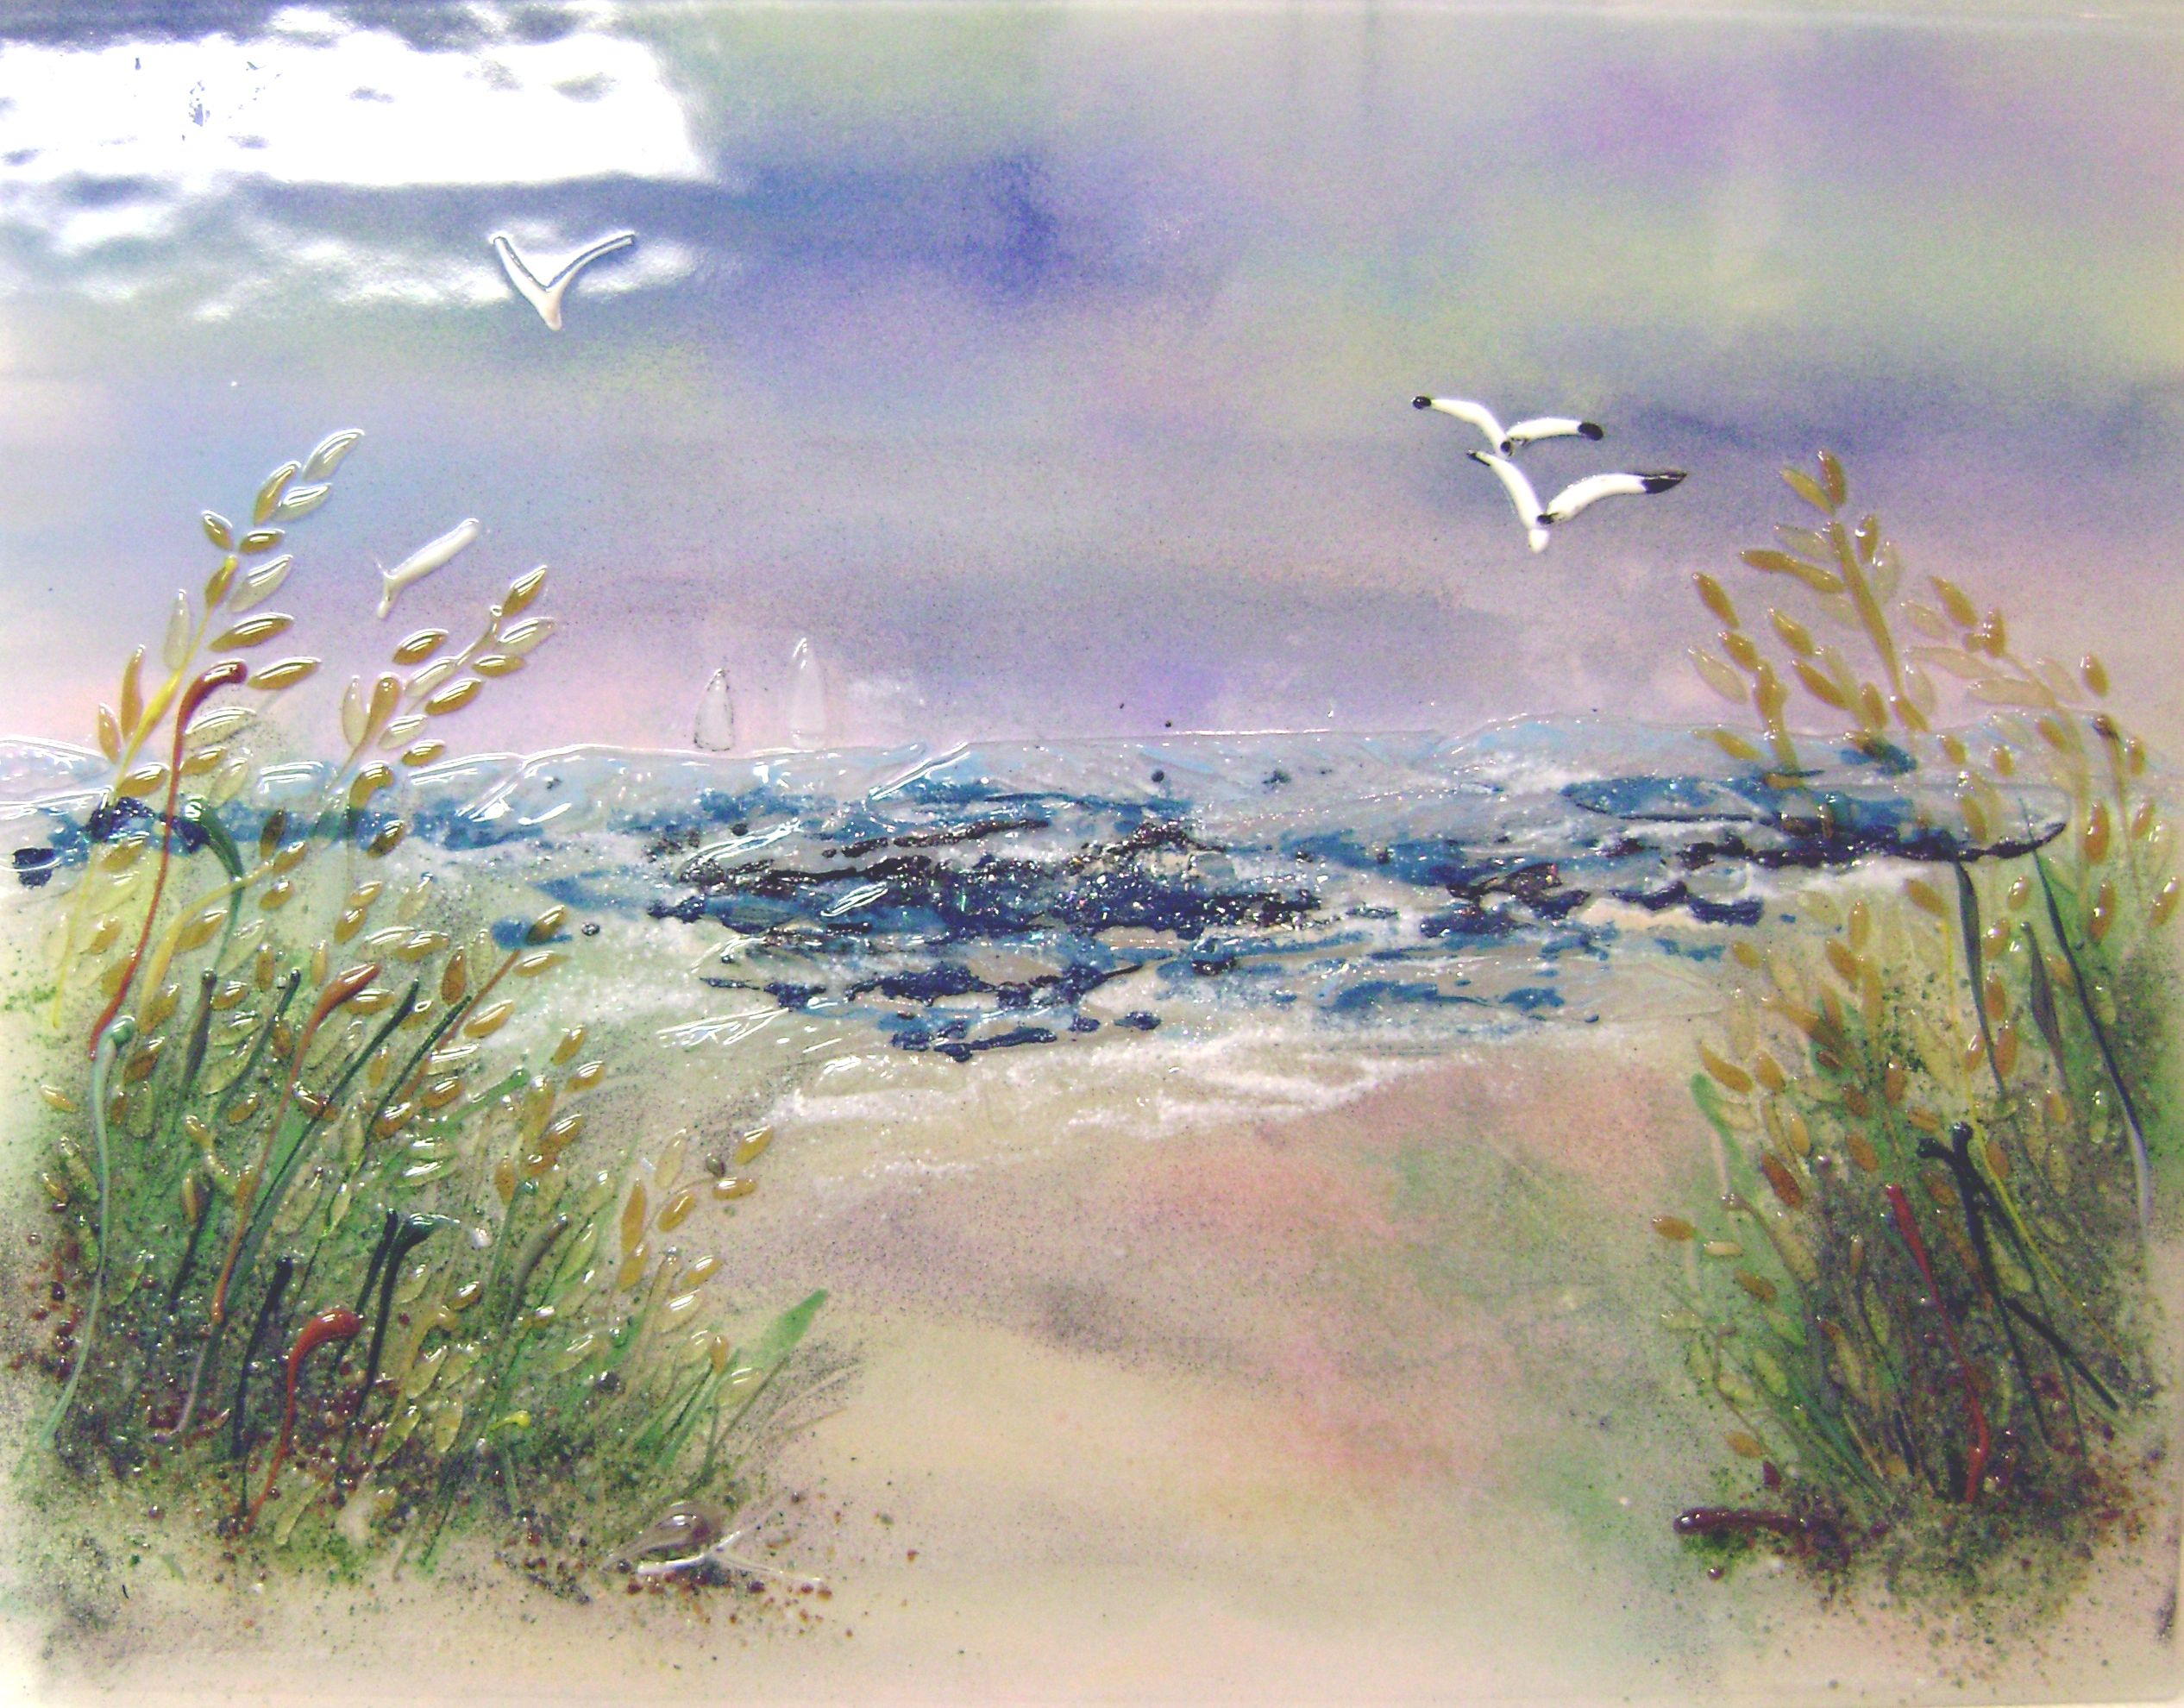 While appearing to be a painting this creative glass mural for Beach mural painting